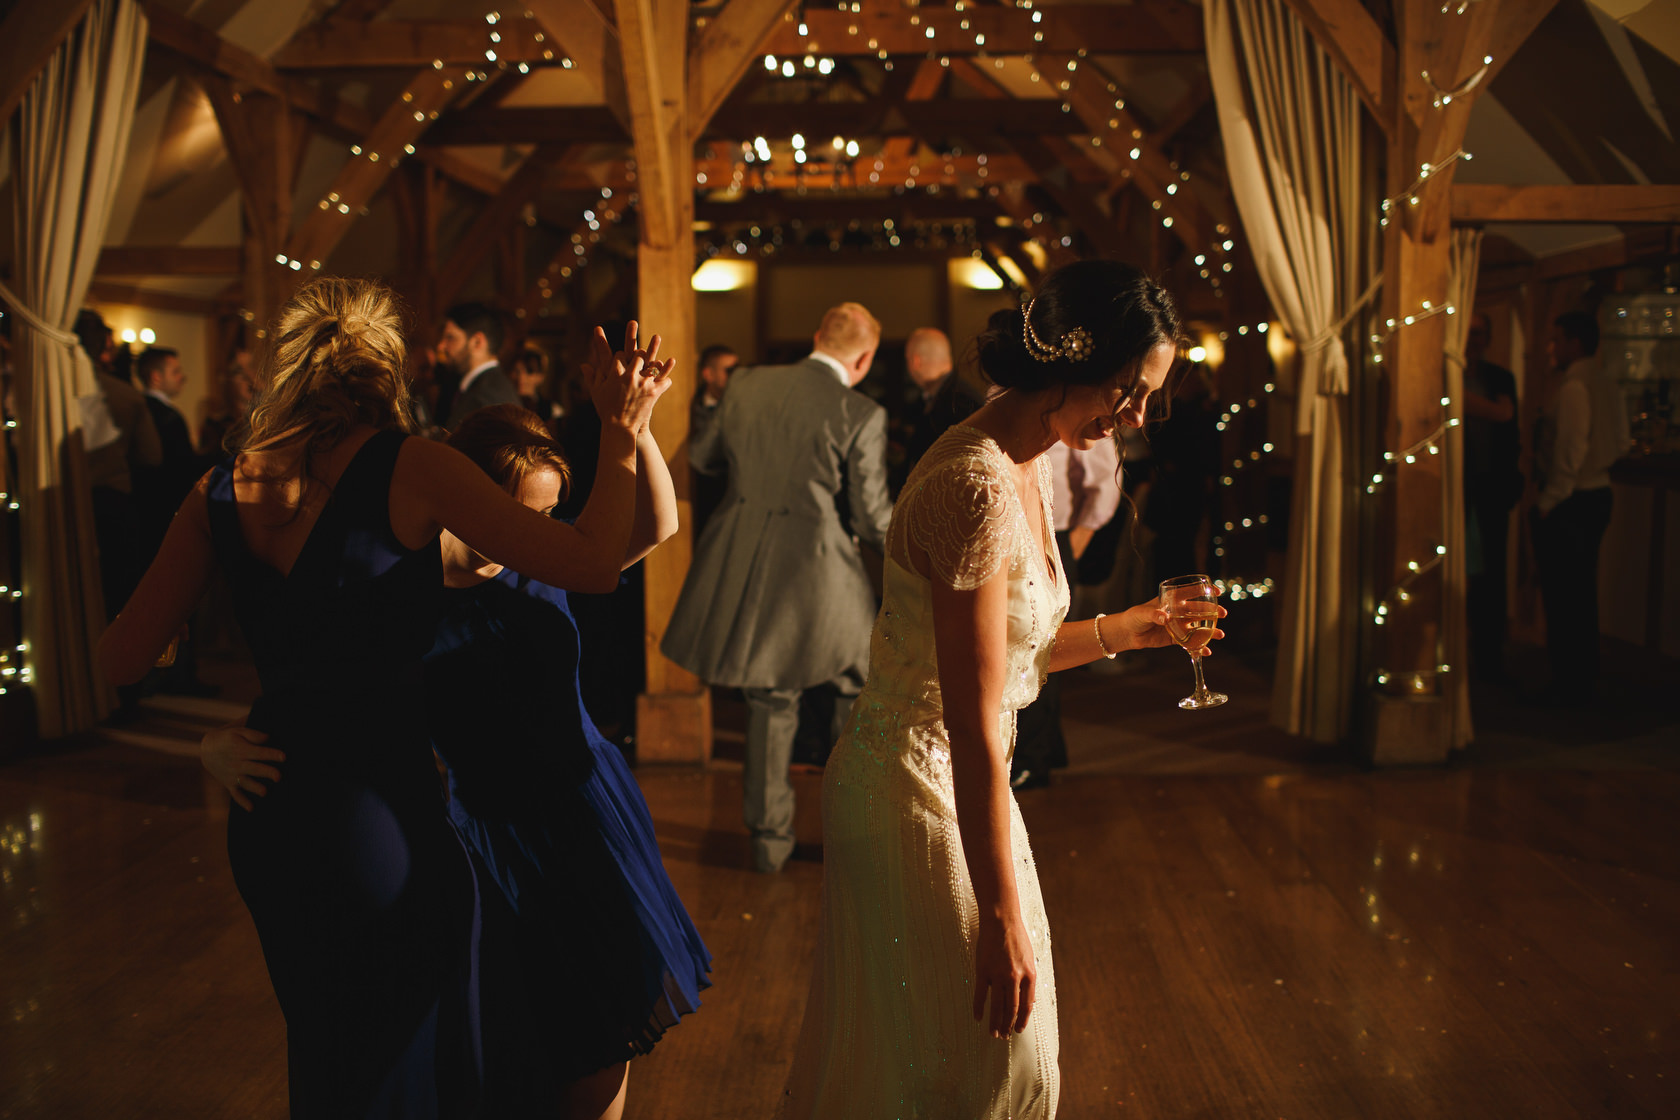 Cheshire wedding photography sandhole oak barn by ARJ Photography http://www.arj-photo.co.uk